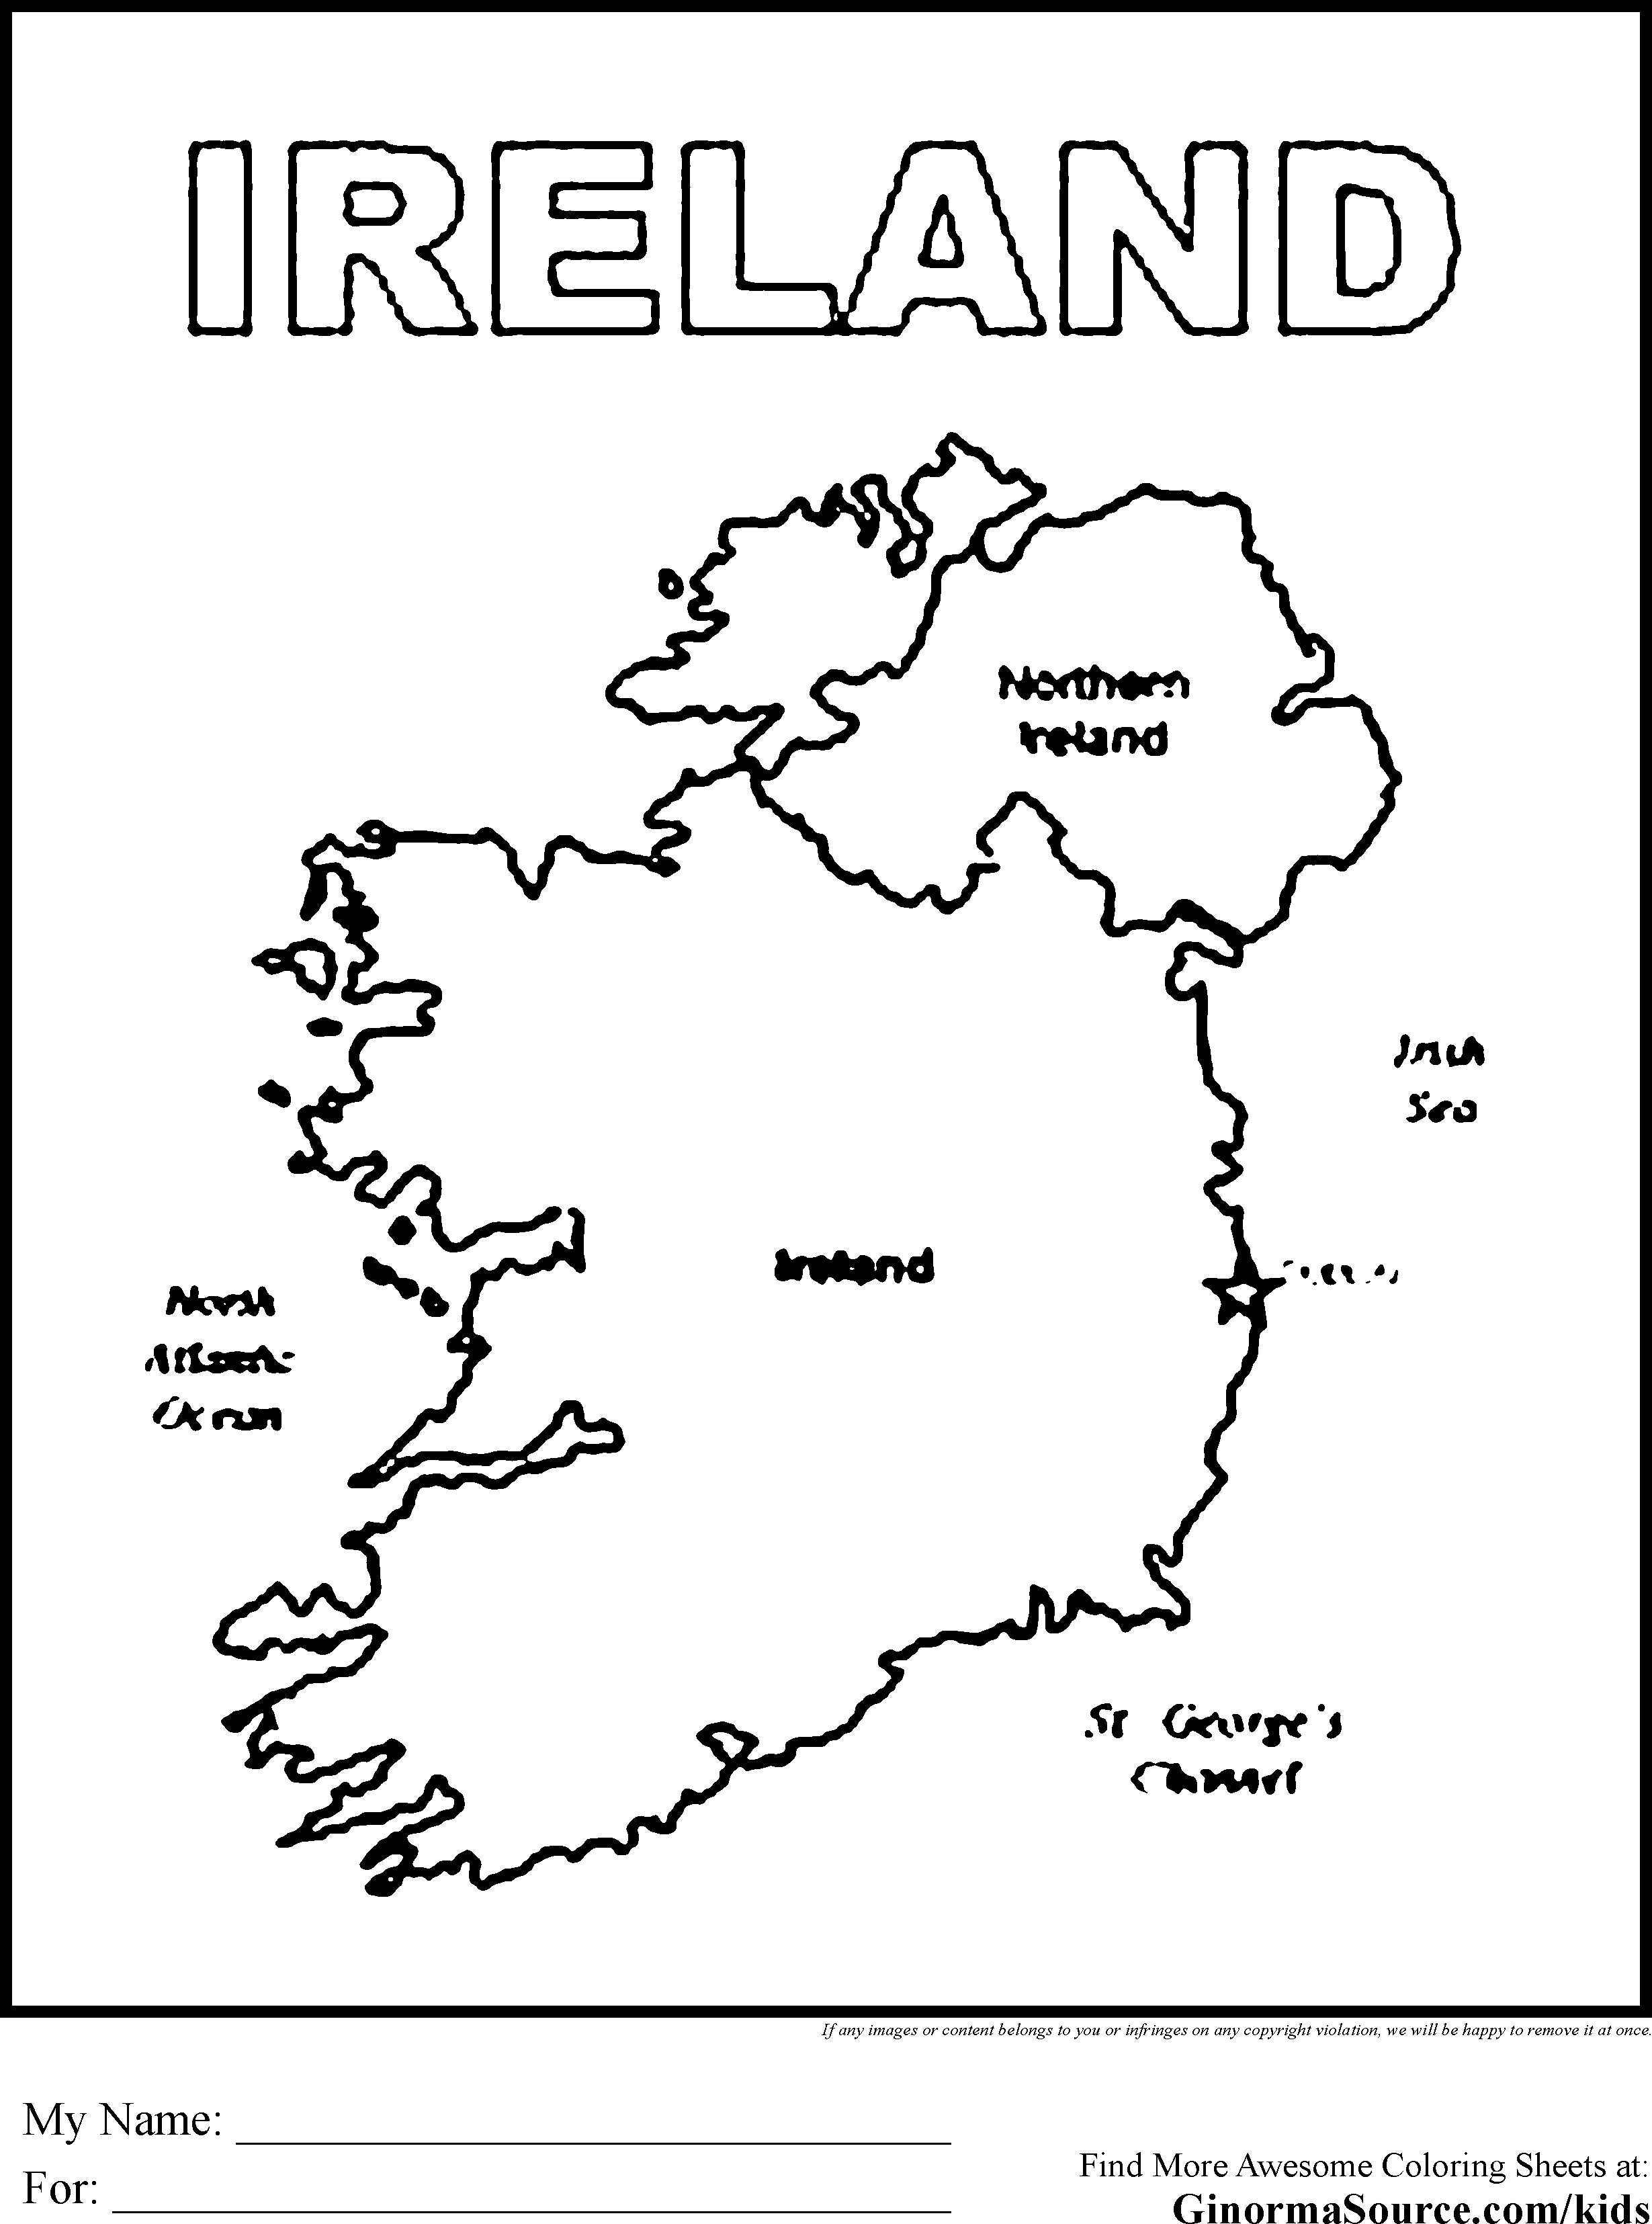 Ireland Coloring Pages Ireland